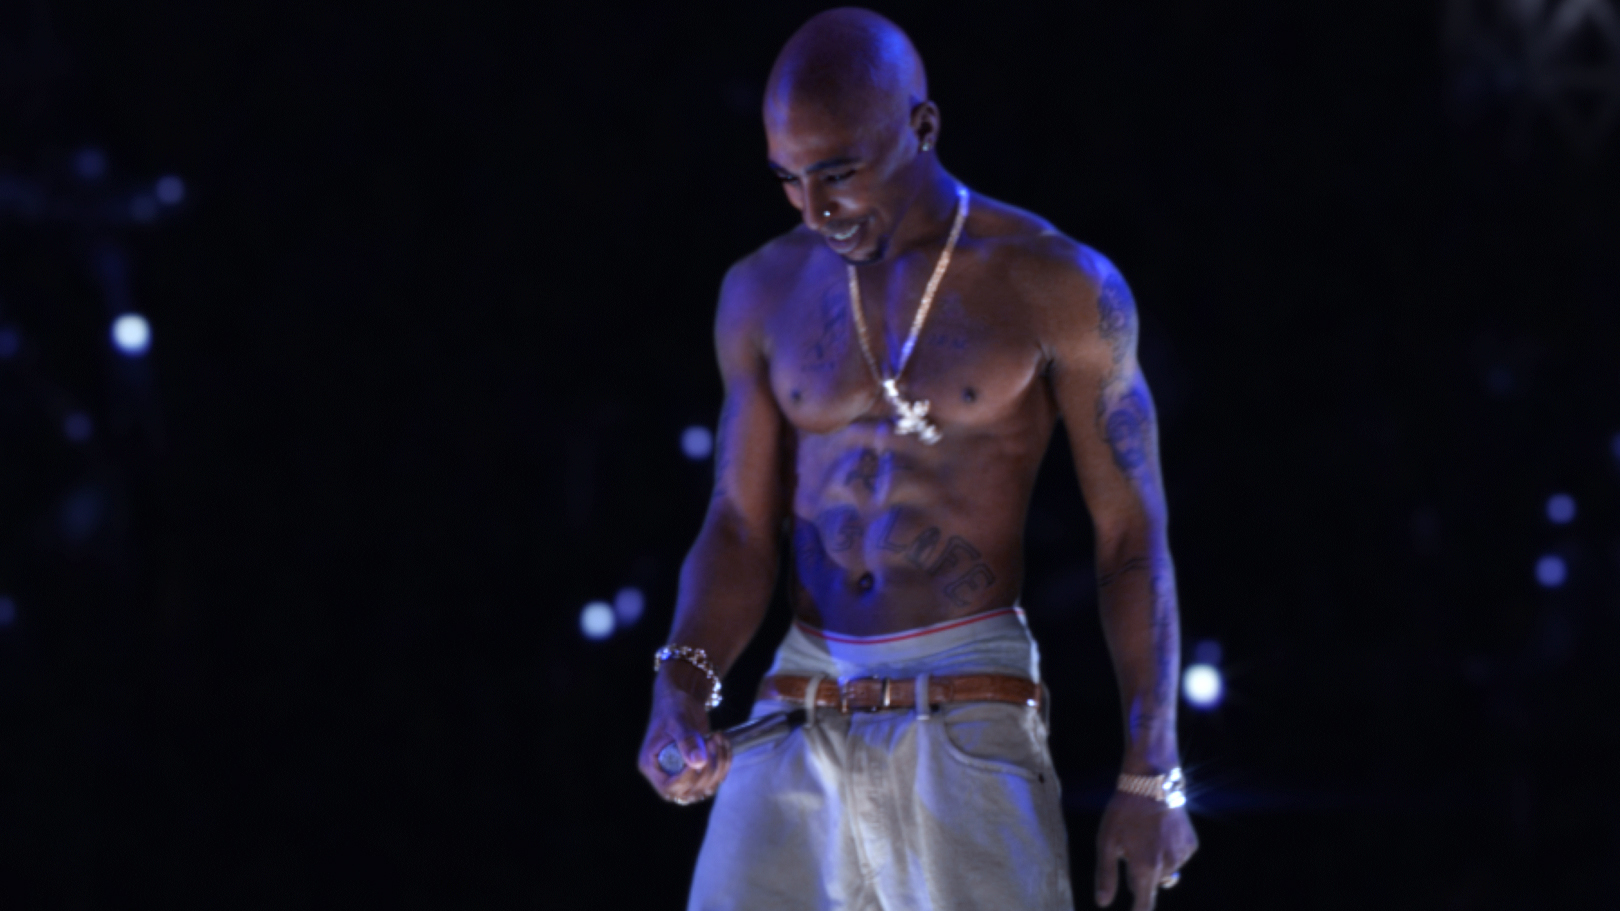 FAMOUS STARS OF THE WORLD: 2pac |Tupac Performing